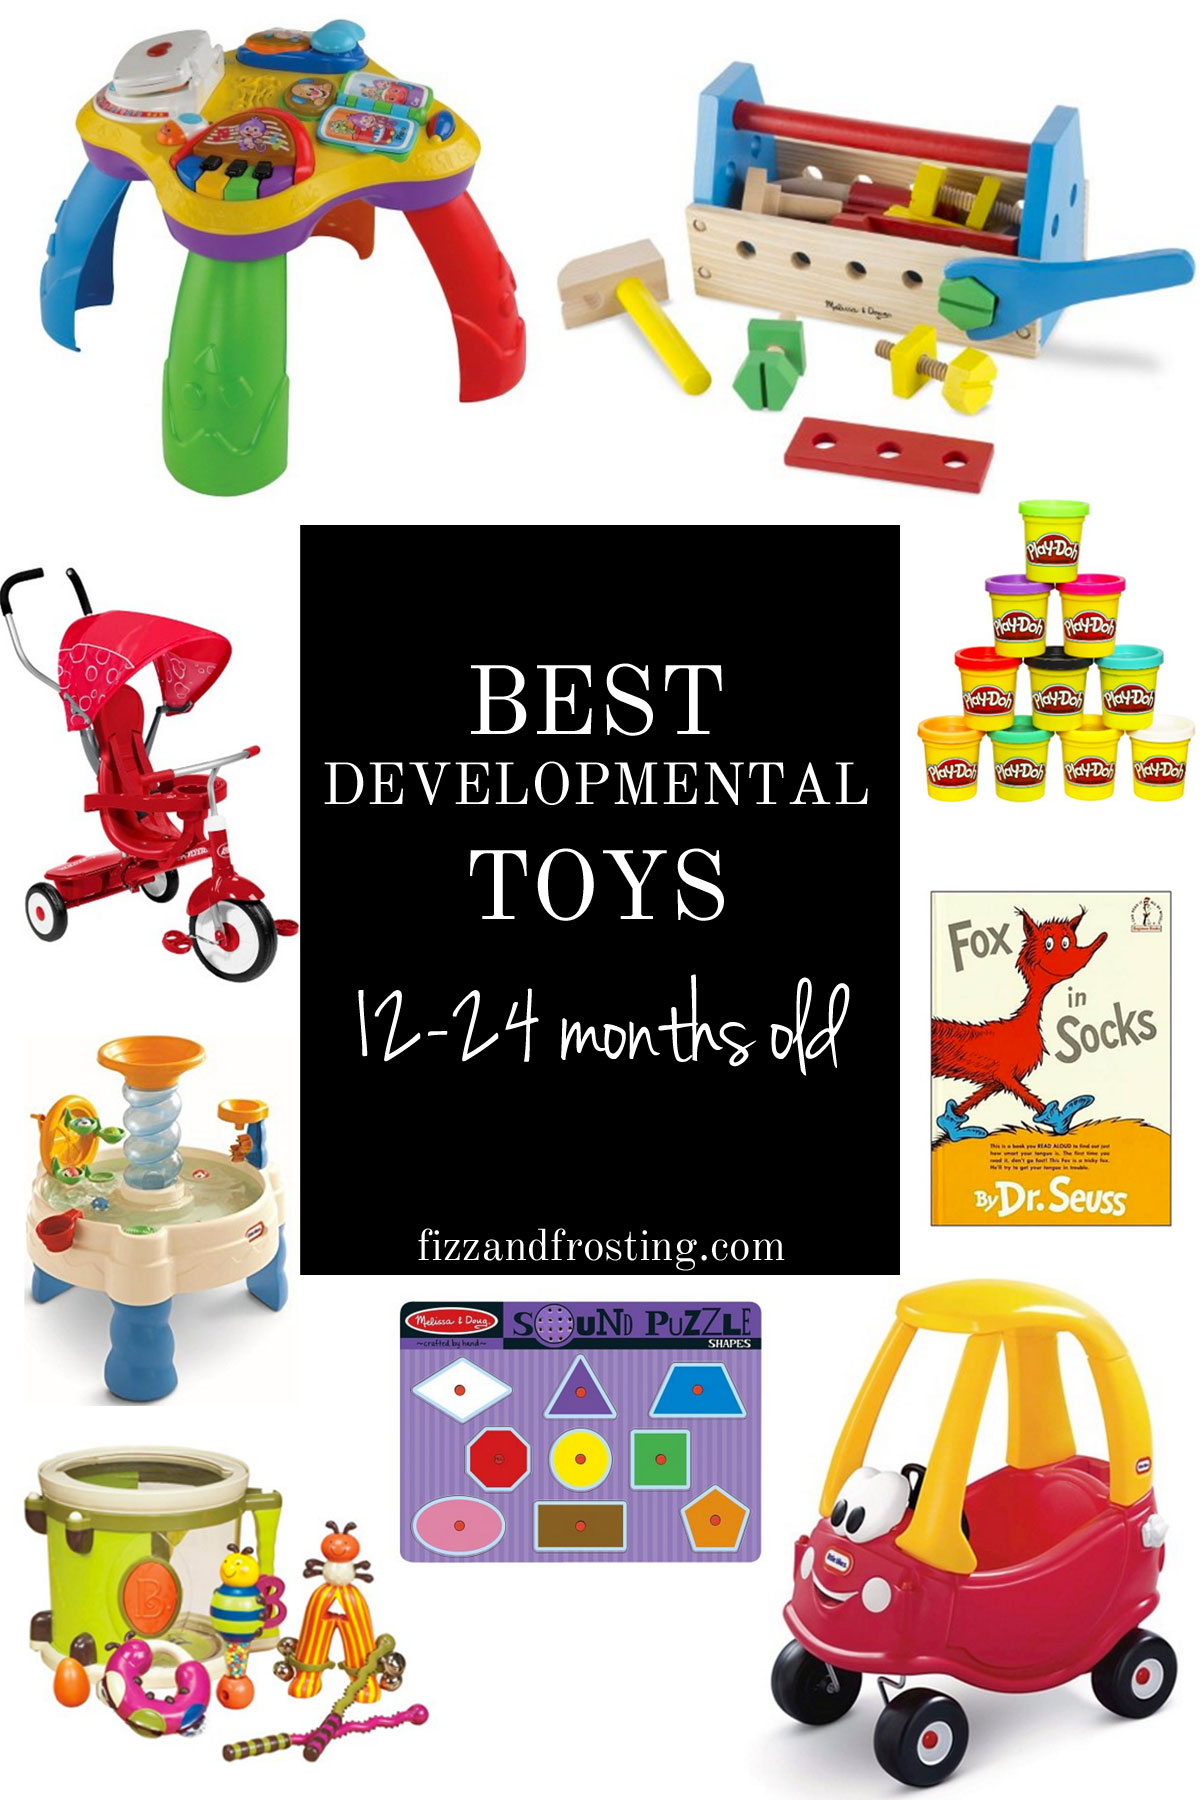 Top Toys For 12 Months : The best educational toddler toys baby games by lauren m